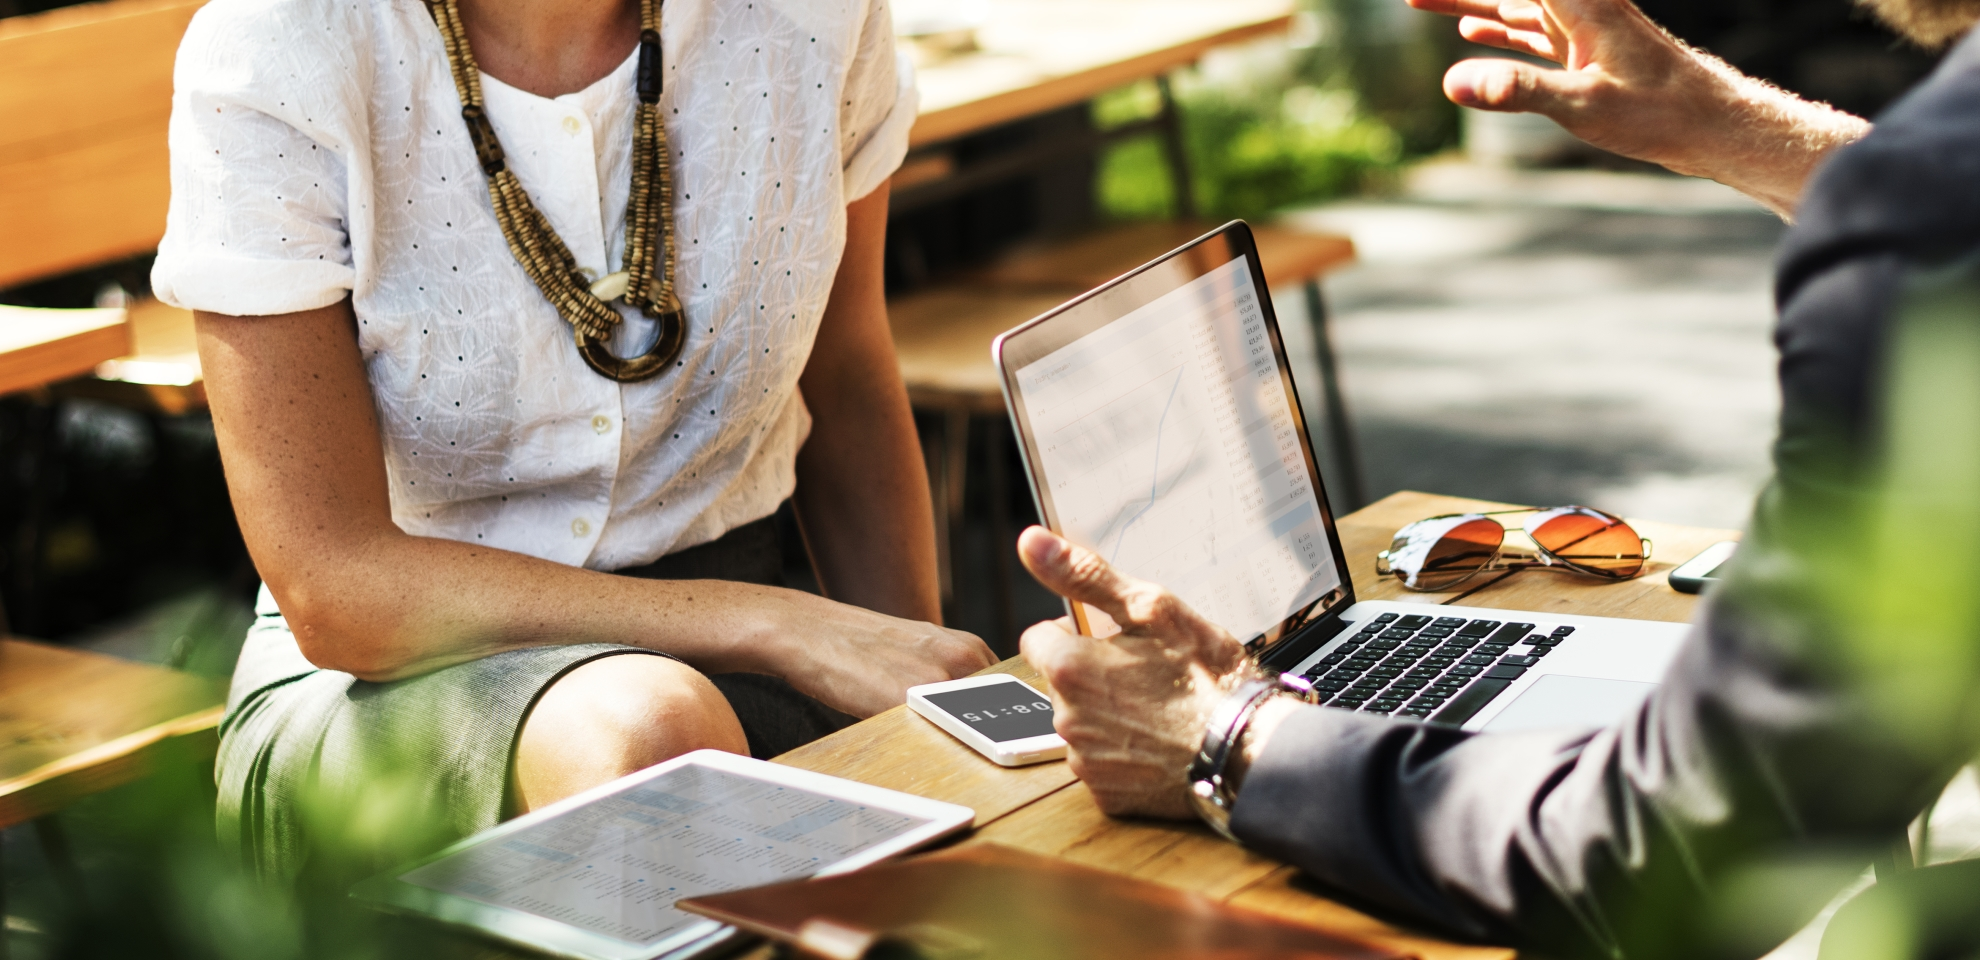 Is Hiring a Marketing Consultant the Right Choice for Your Small Business?